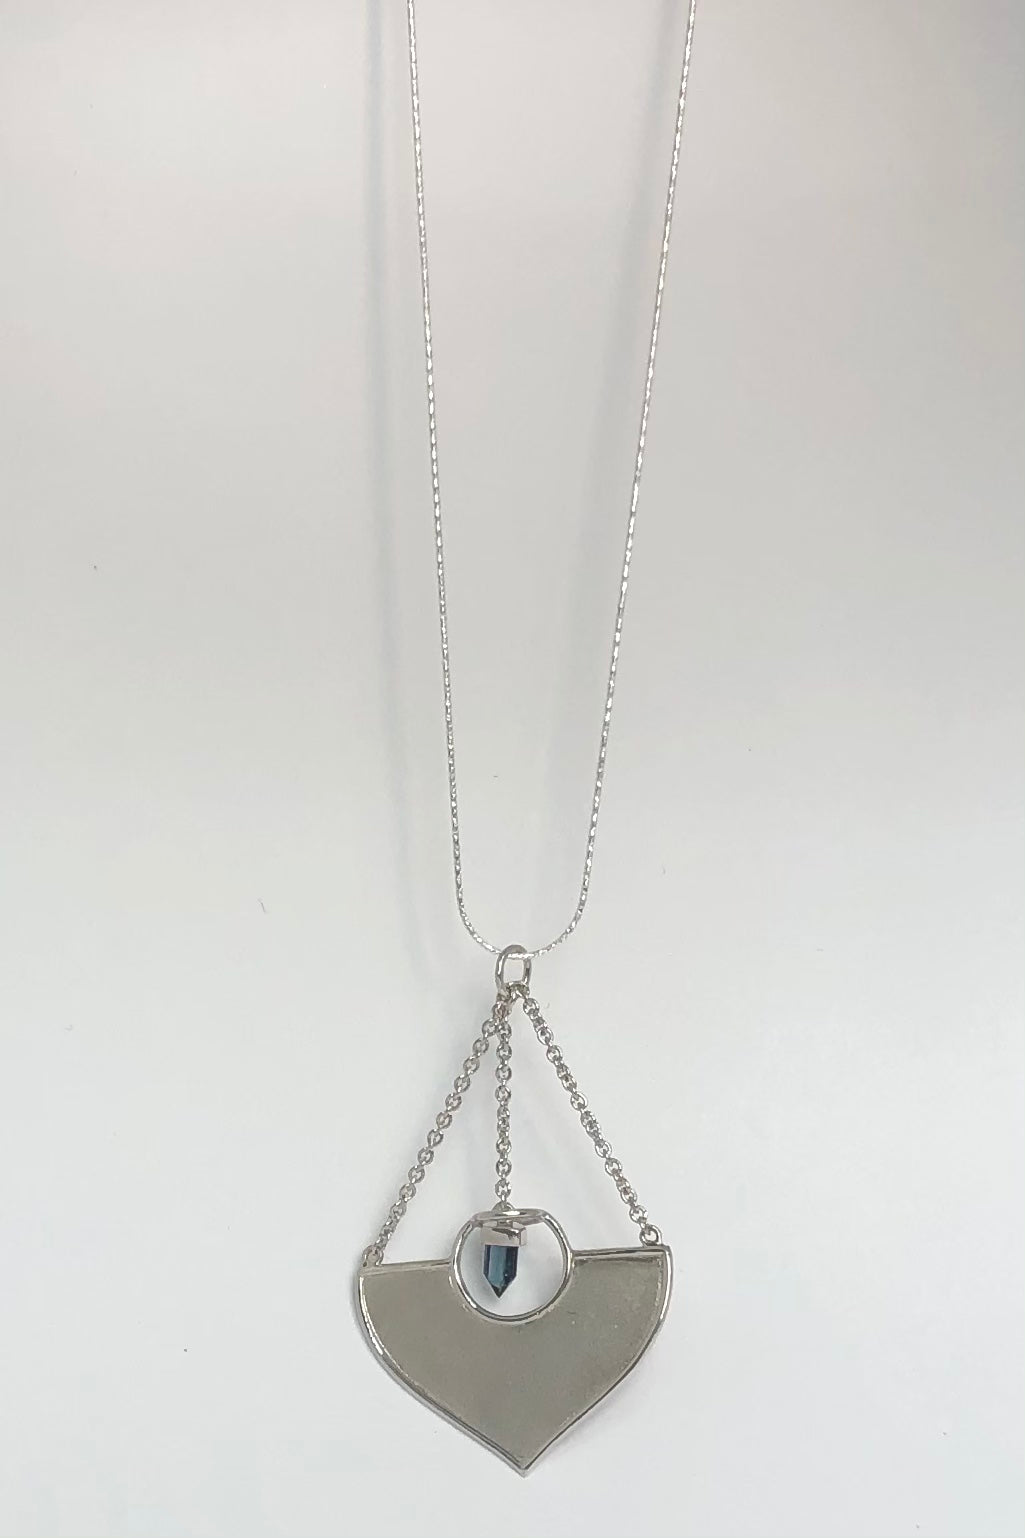 A stunning African Style 925 silver pendant with a Tourmaline Shard which hangs perfectly through a silver circle. The intense blue Tourmaline was sourced ethically from miners in Nigeria,